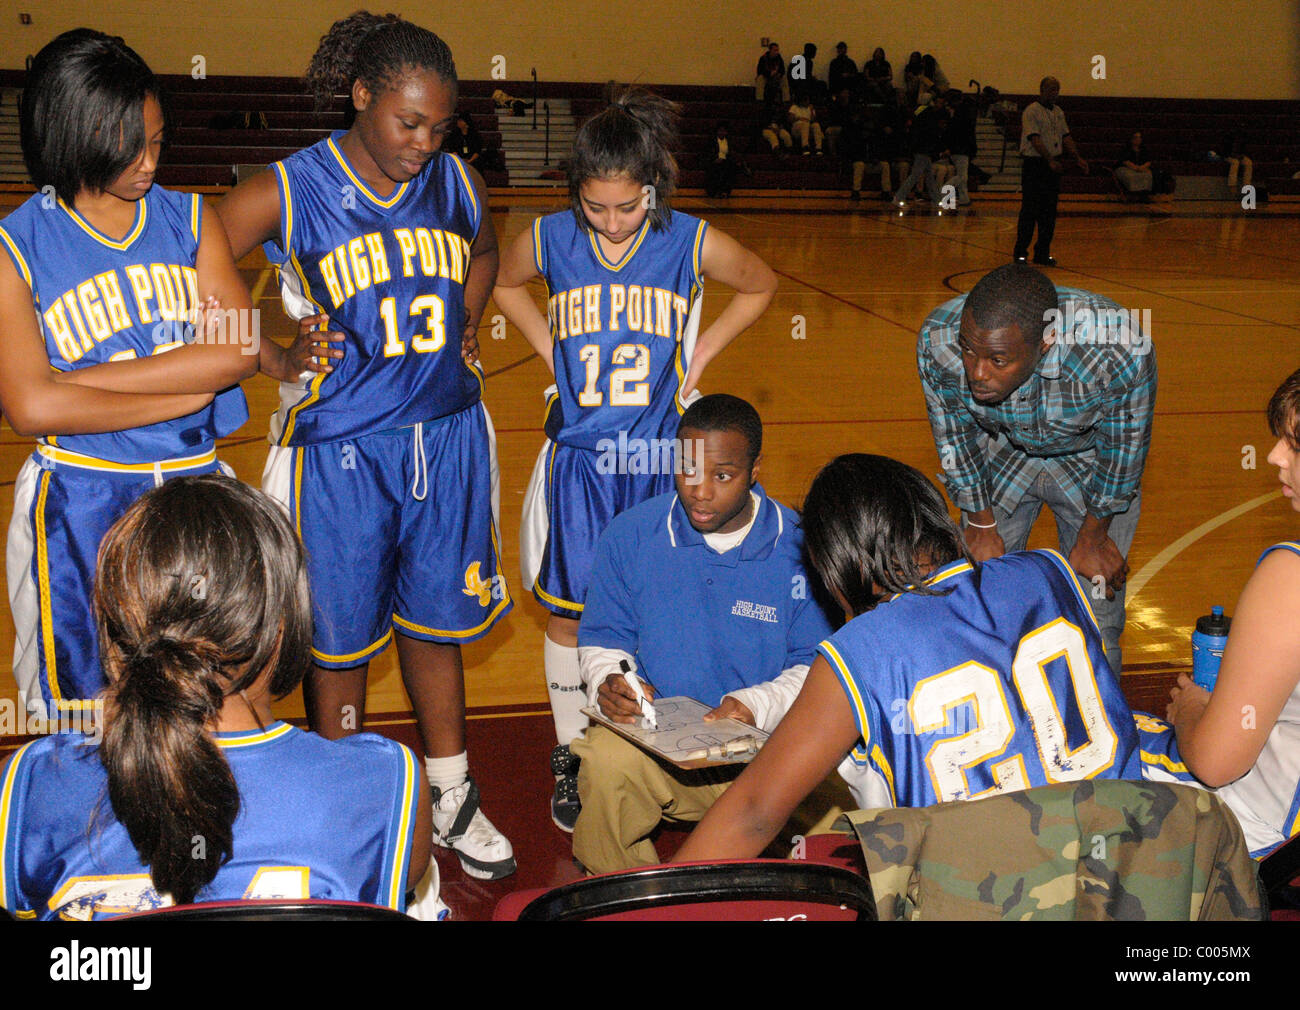 Coach discusses strategy with his players at a girl's high school basketball game - Stock Image